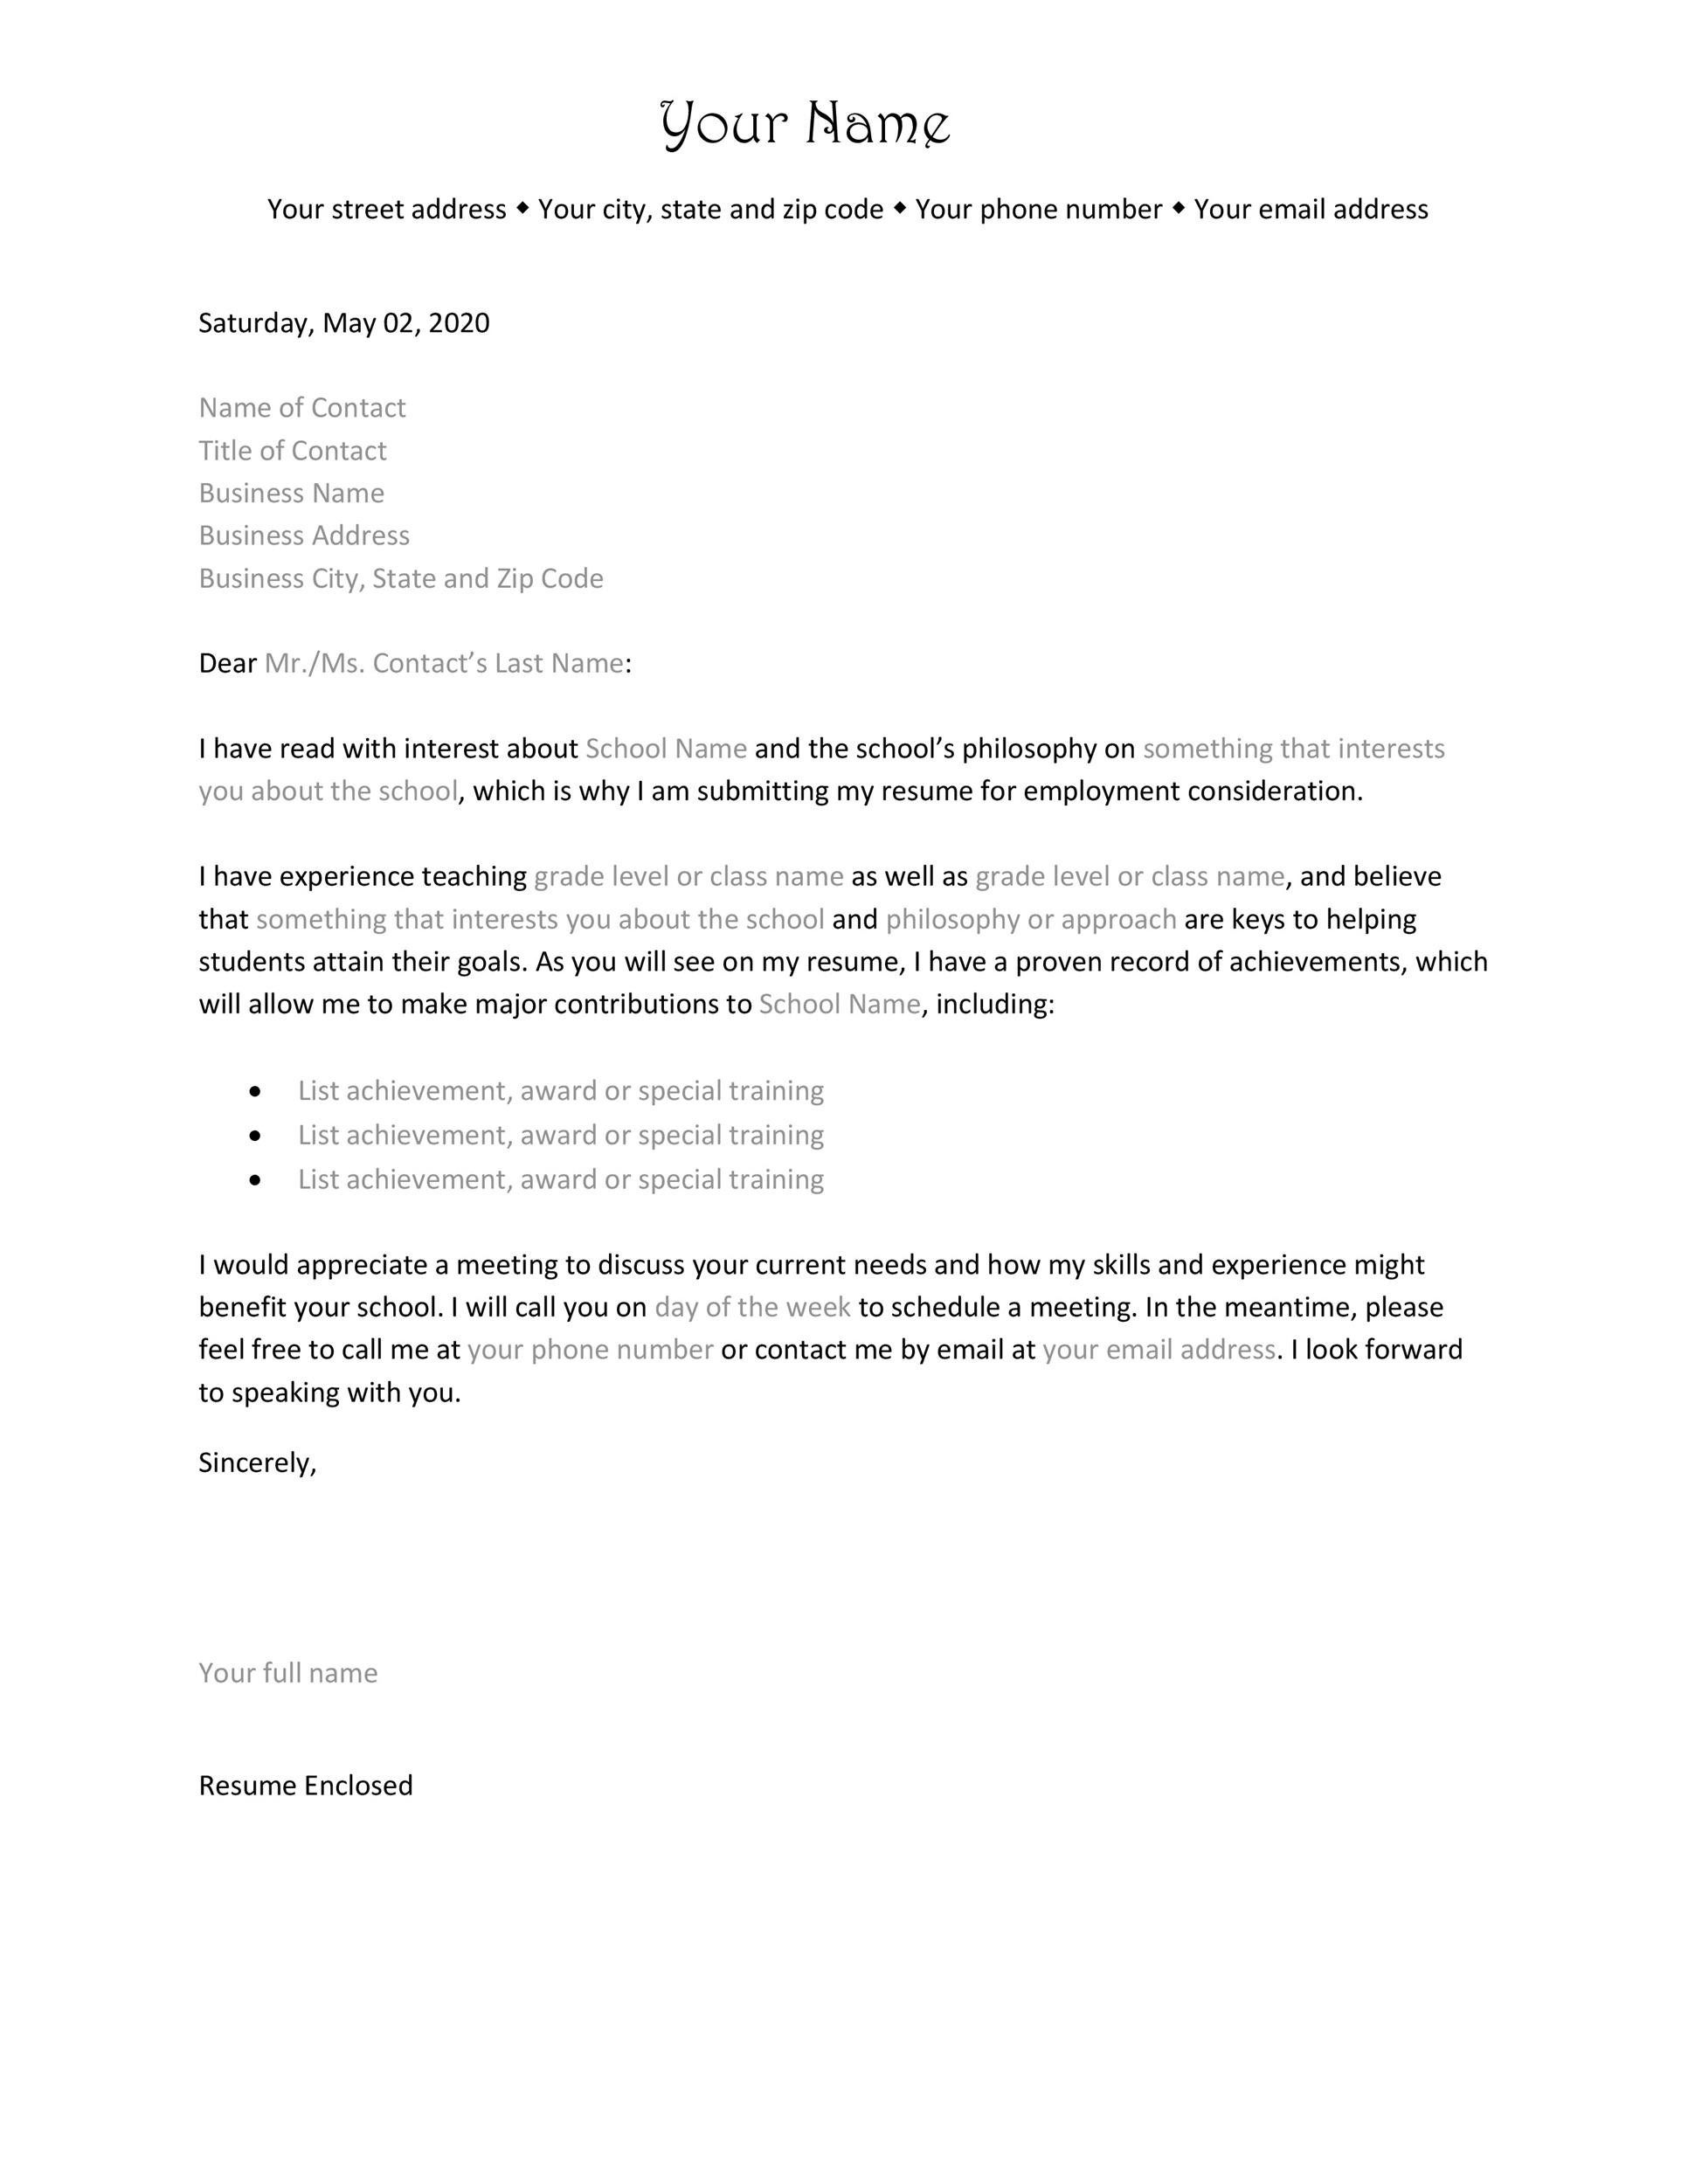 printable letter of interest 03 - Cover Letter Of Application